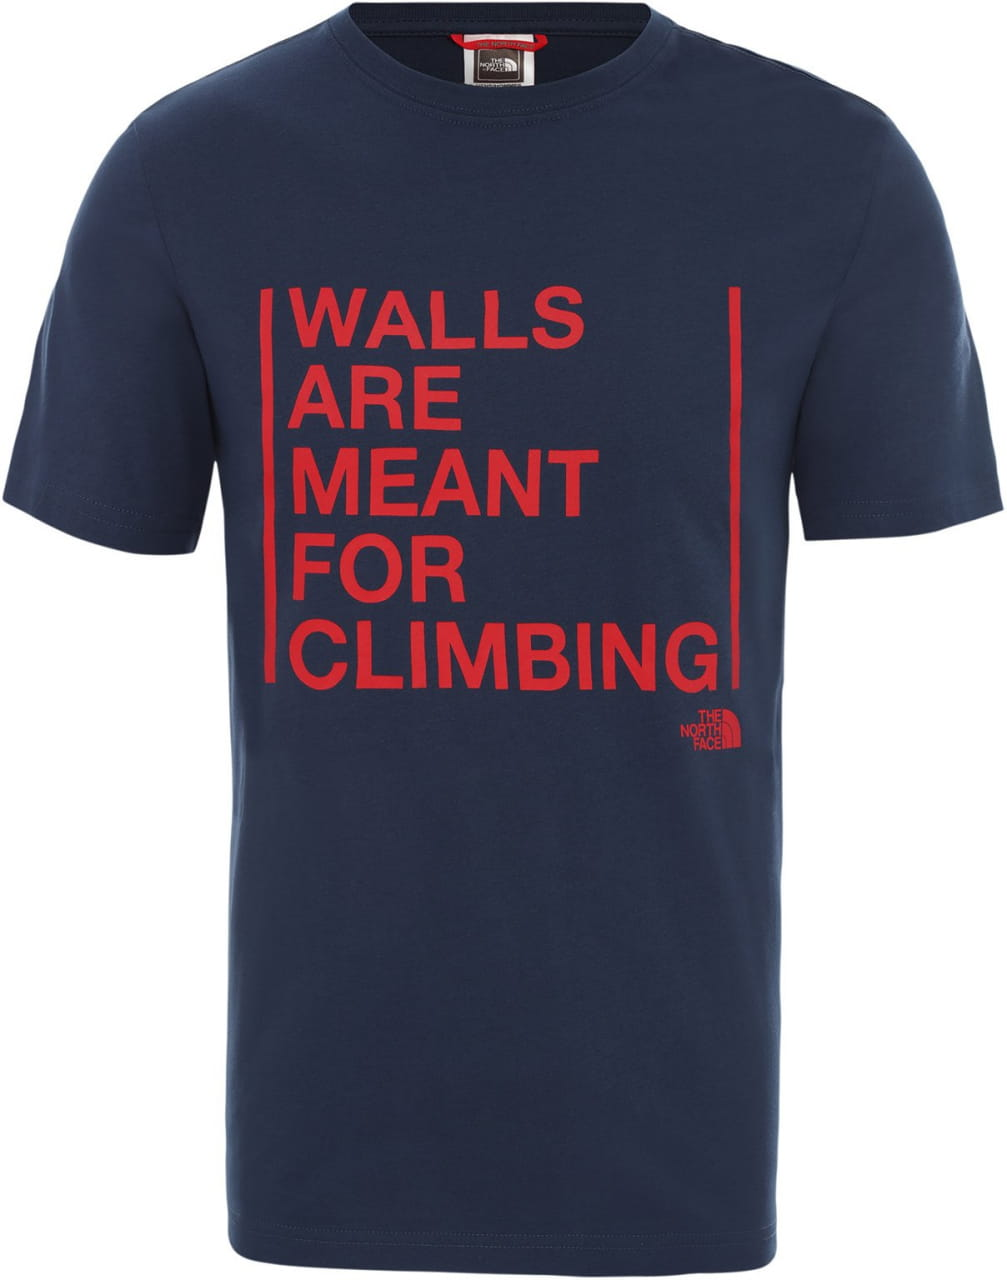 T-Shirts The North Face Men's Walls Are For Climbing T-Shirt